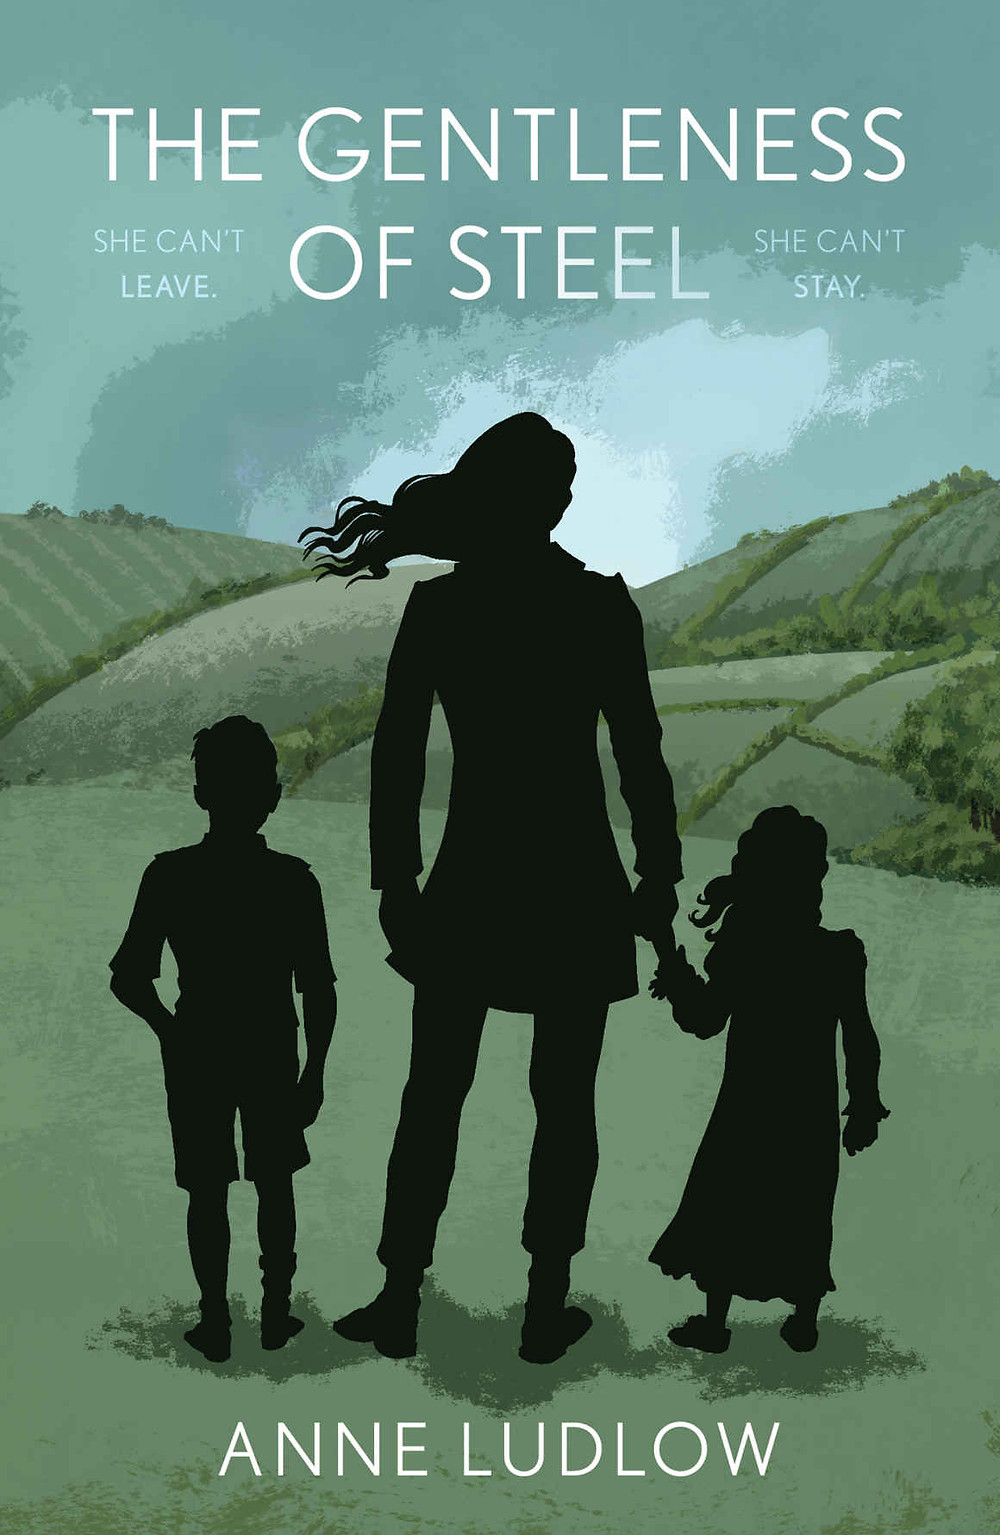 The first novel by Anne Ludlow, The Gentleness Of Steel, a great read!